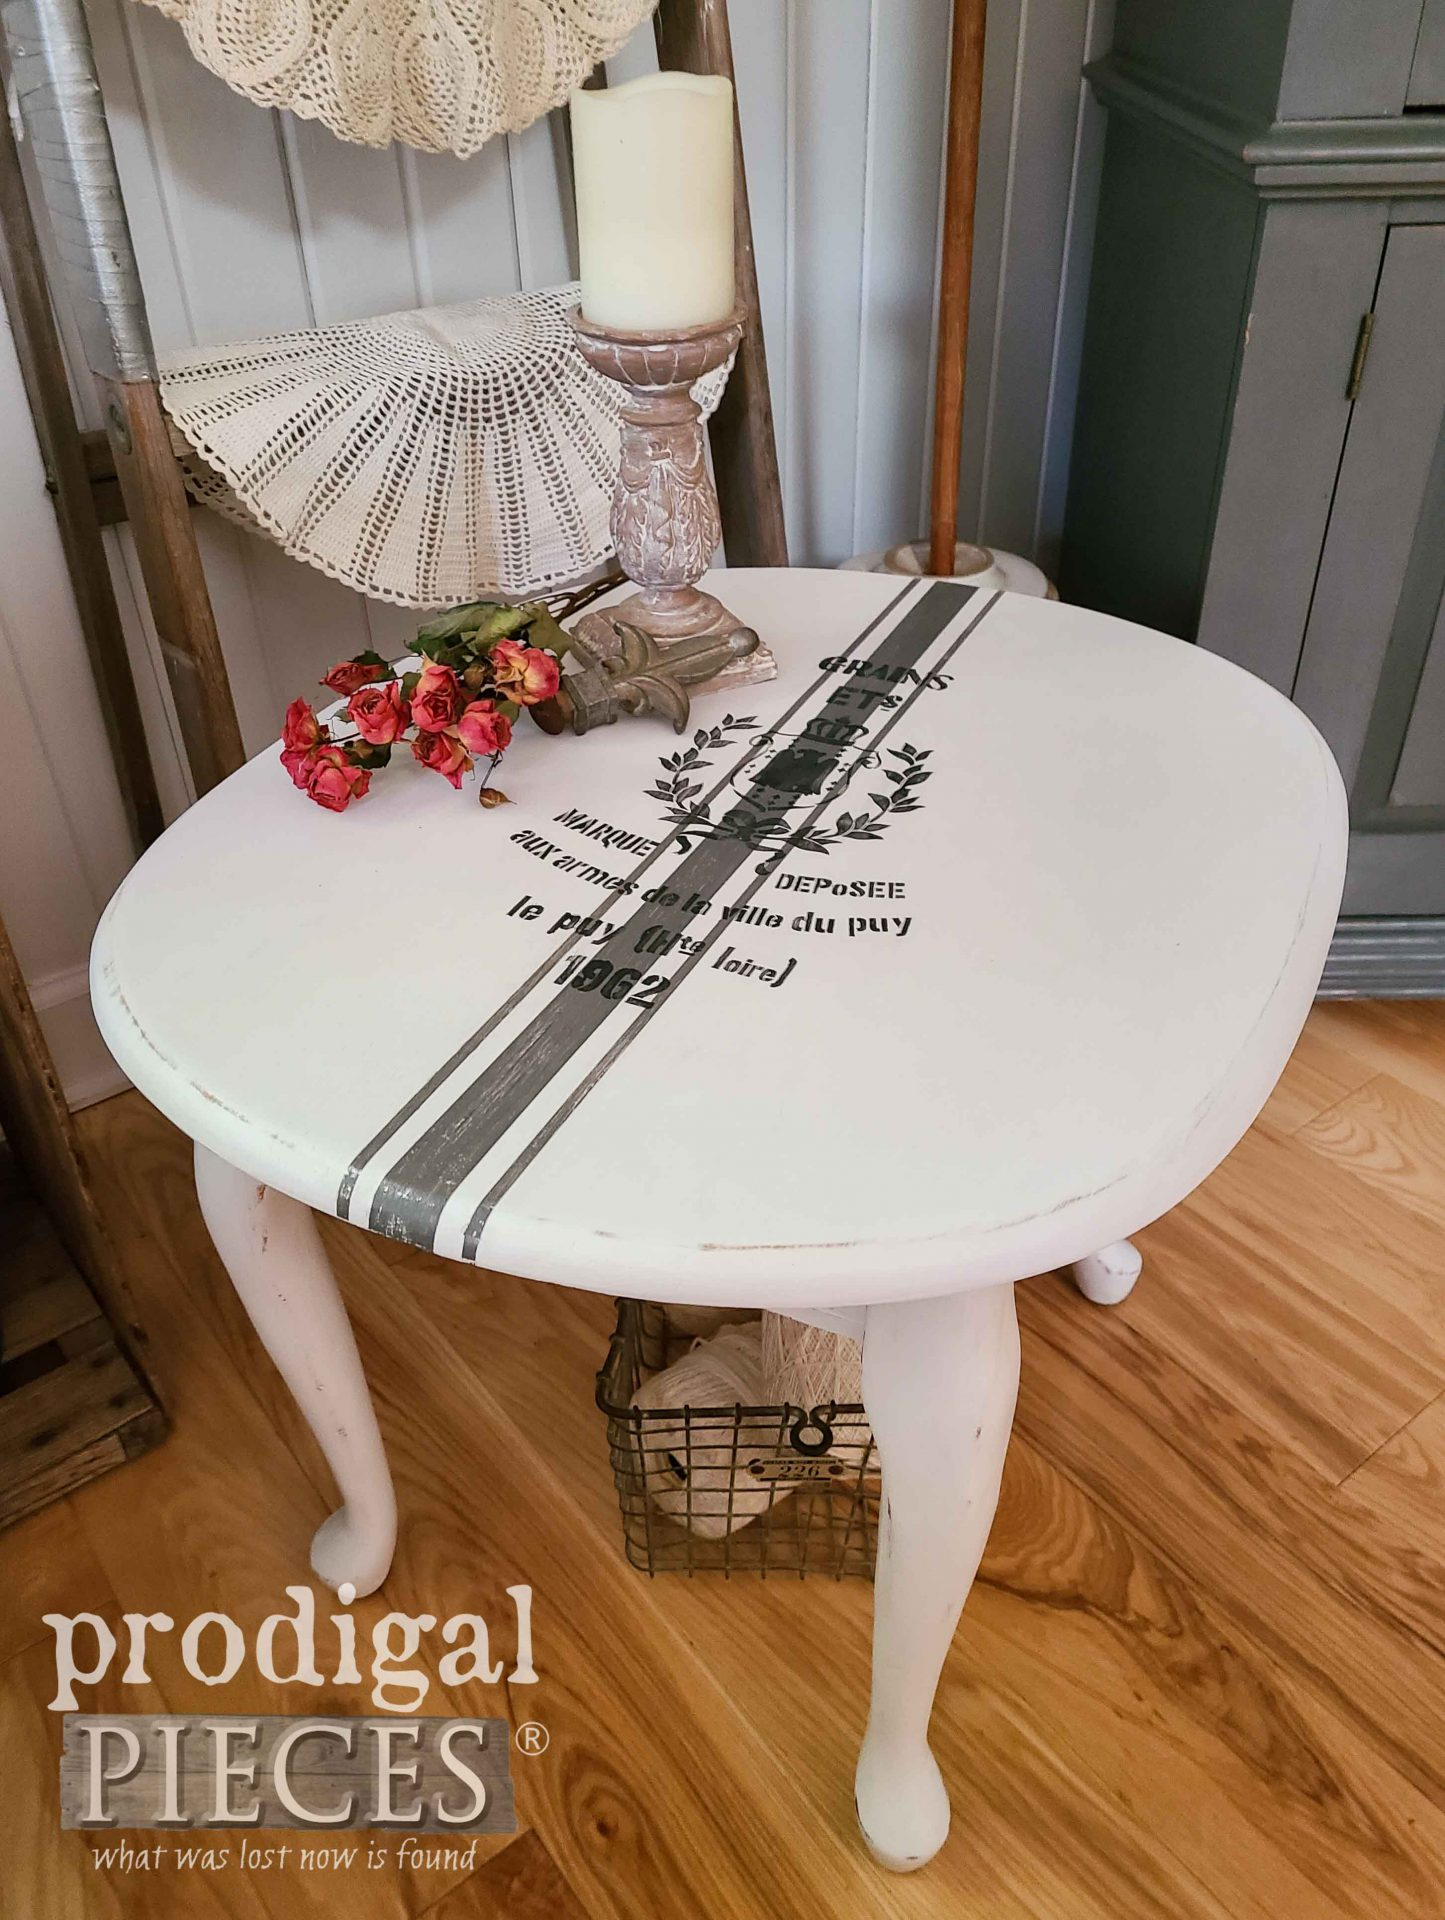 Vintage Painted Side Table Update in French Farmhouse Style by Larissa of Prodigal Pieces | prodigalpieces.com #prodigalpieces #furniture #home #homedecor